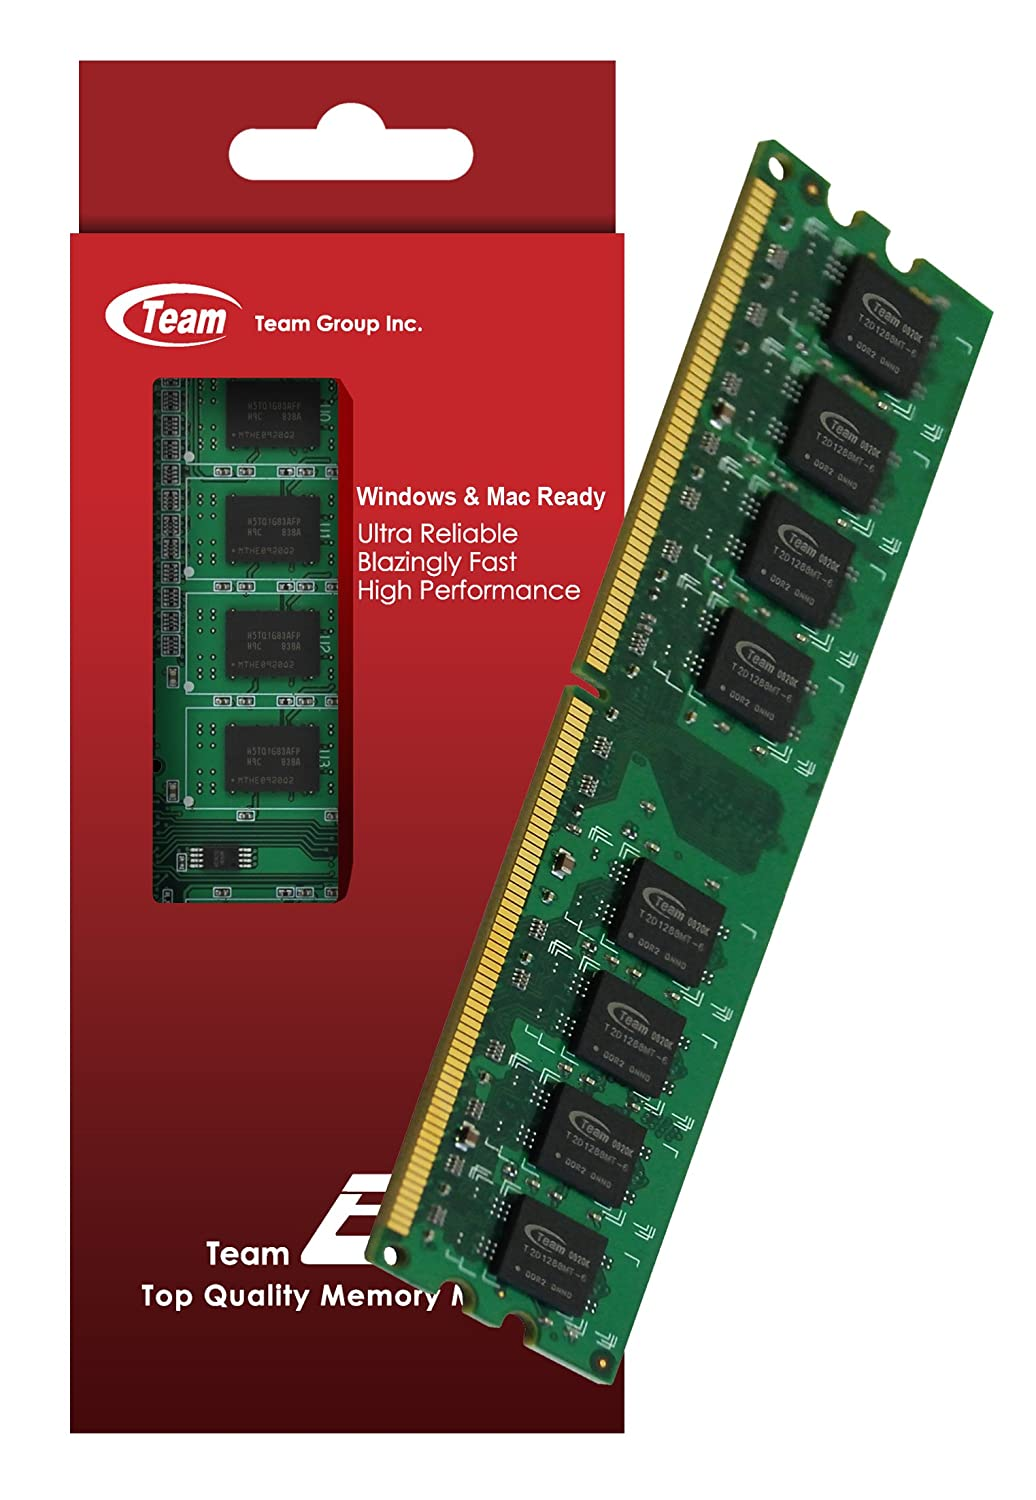 2GB Team High Performance Memory RAM Upgrade Single Stick For Dell XPS 710 710 H2C One 24. The Memory Kit comes with Life Time Warranty. 4gb 44t1586 vlp rdimm pc3 10600r hs22 hs22v server memory one year warranty